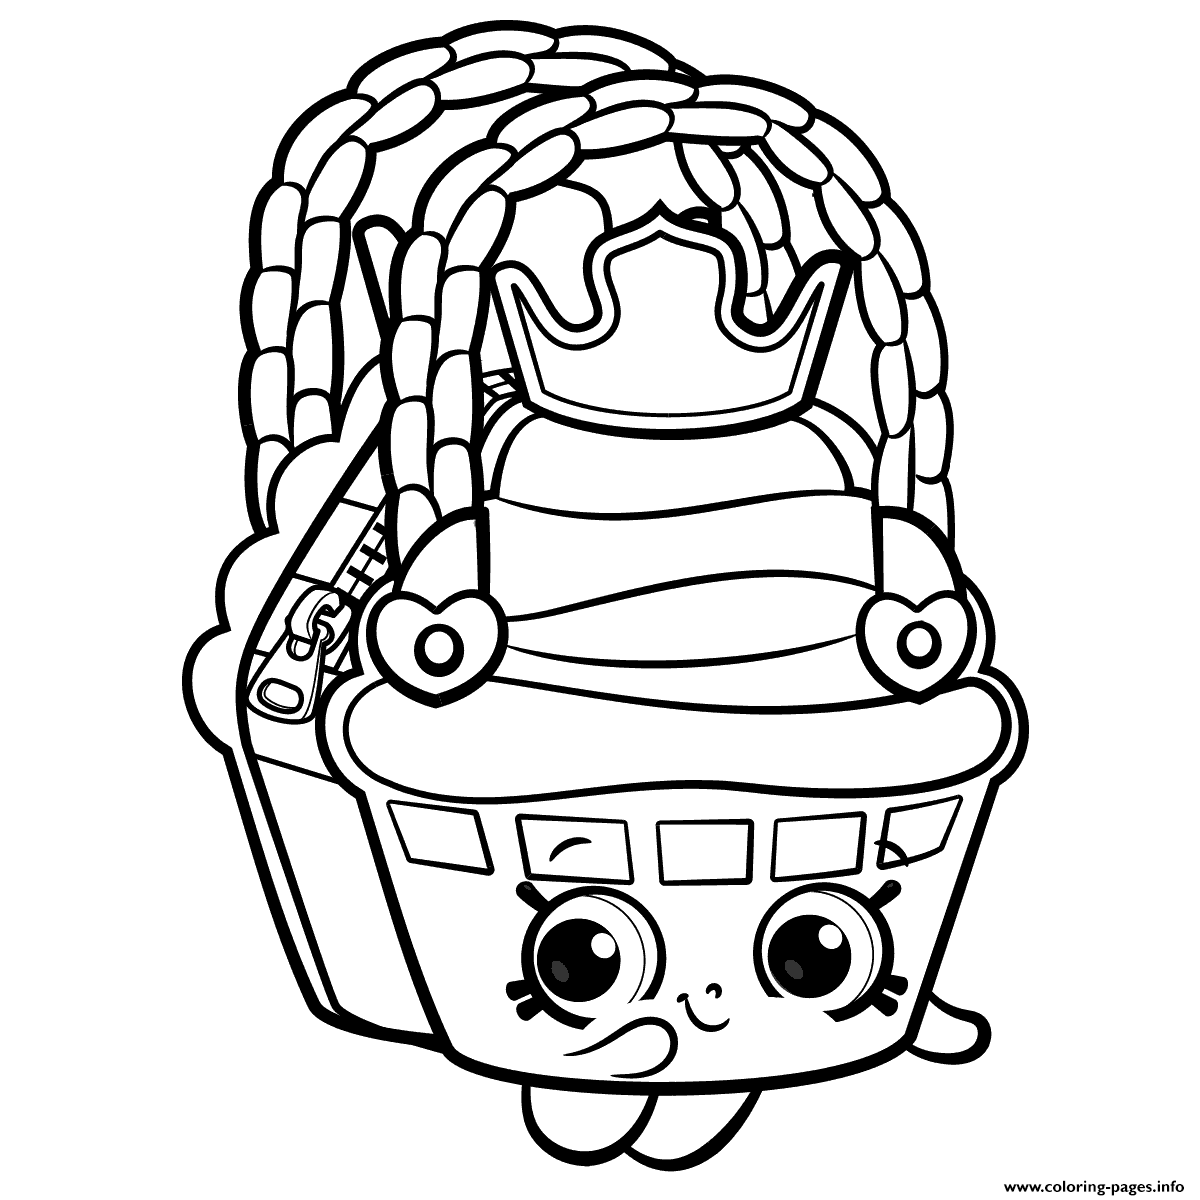 Chocolate Chip Cookies Coloring Pages